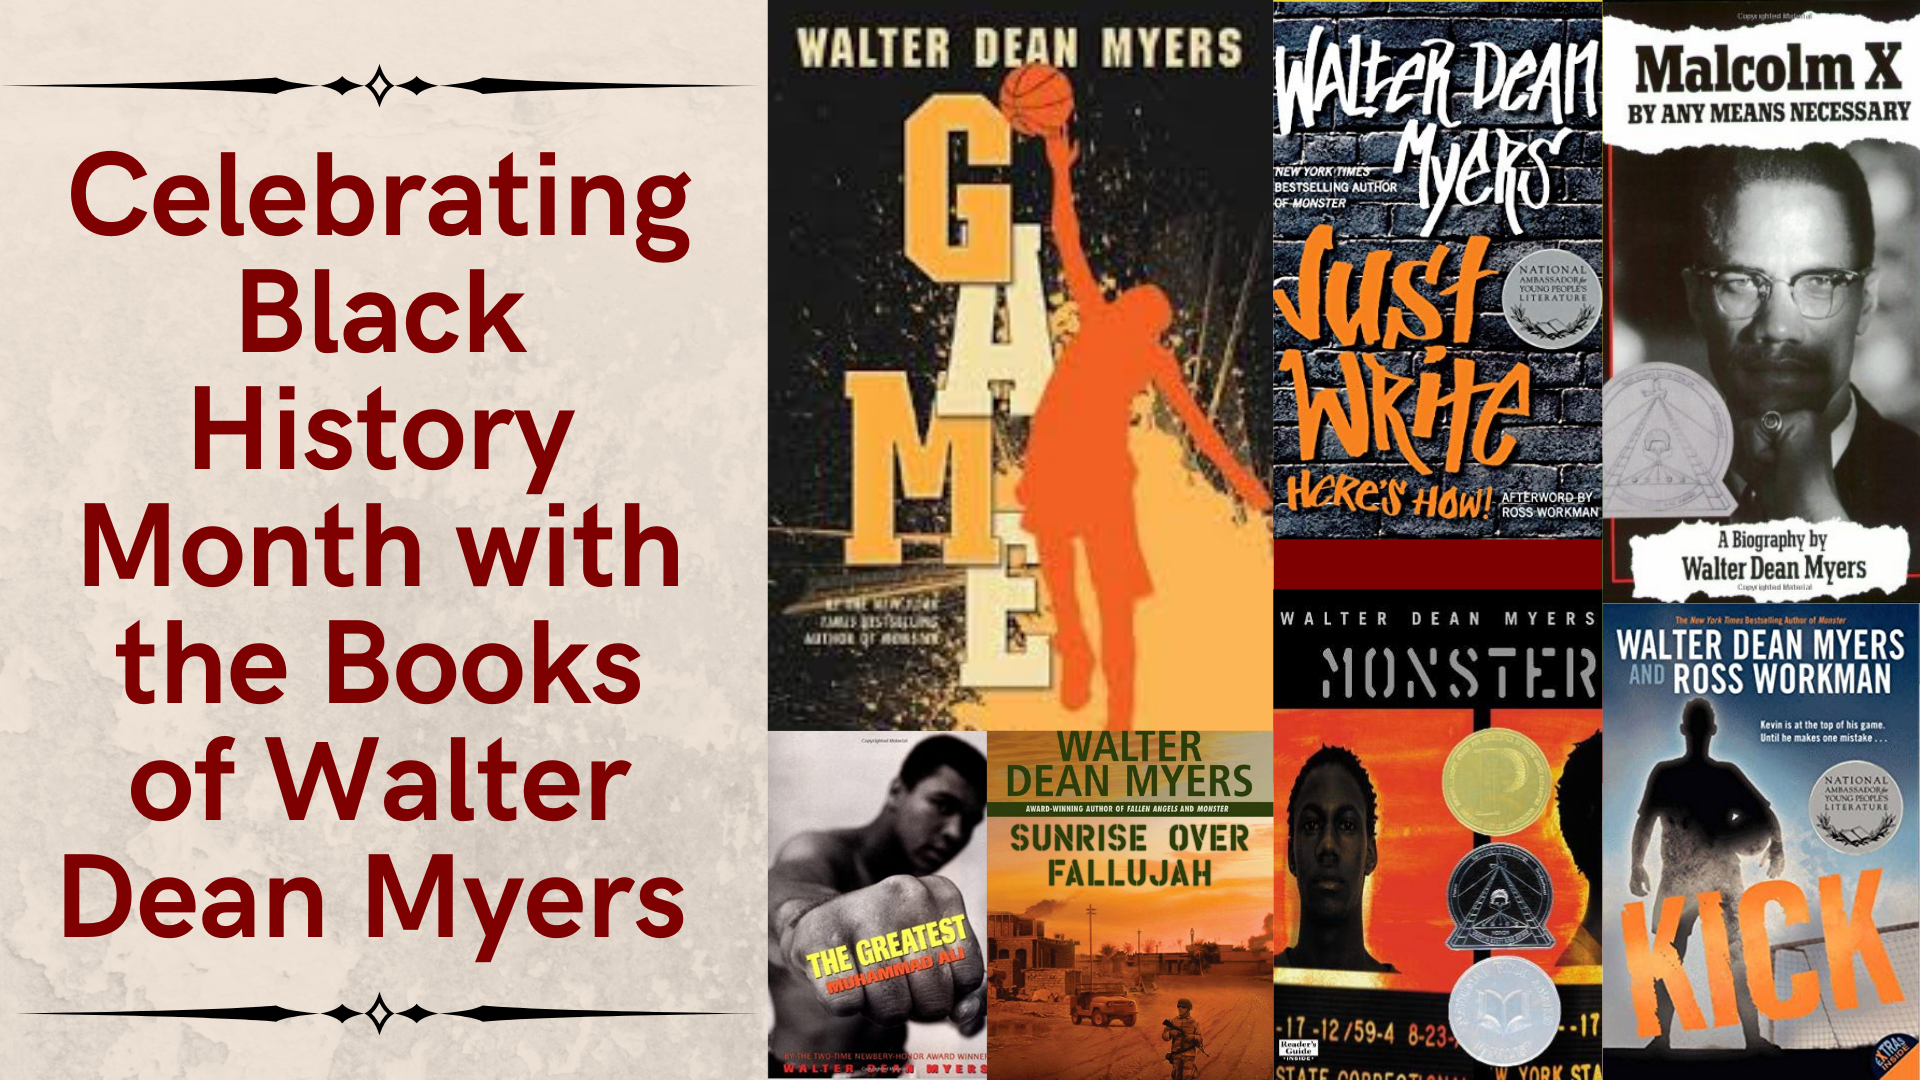 Celebrating Black History Month with the Books of Walter Dean Myers